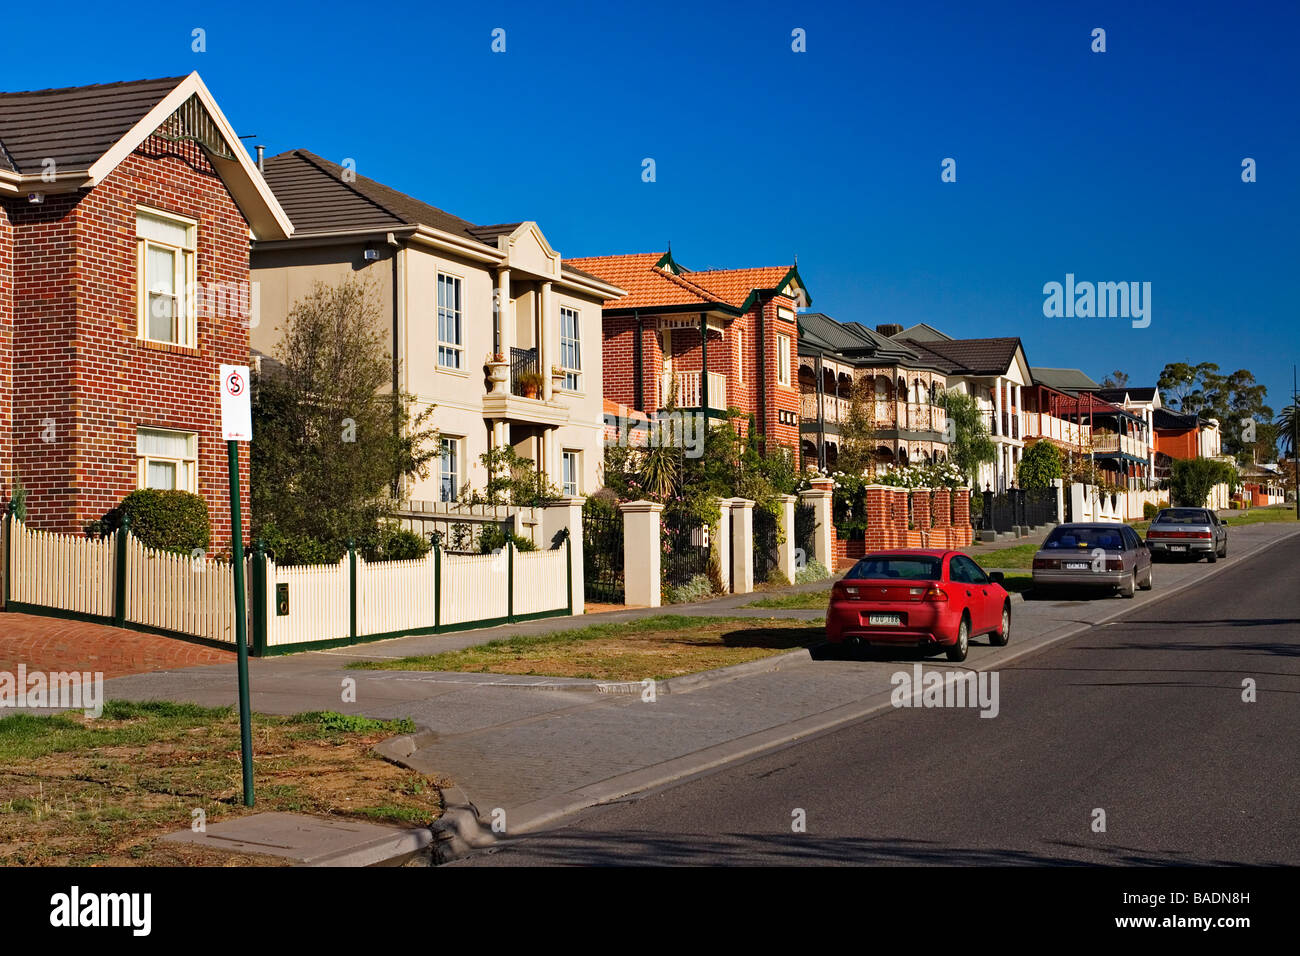 Residential Homes /  Australian homes on an housing estate.The location is Melbourne Victoria Australia. - Stock Image